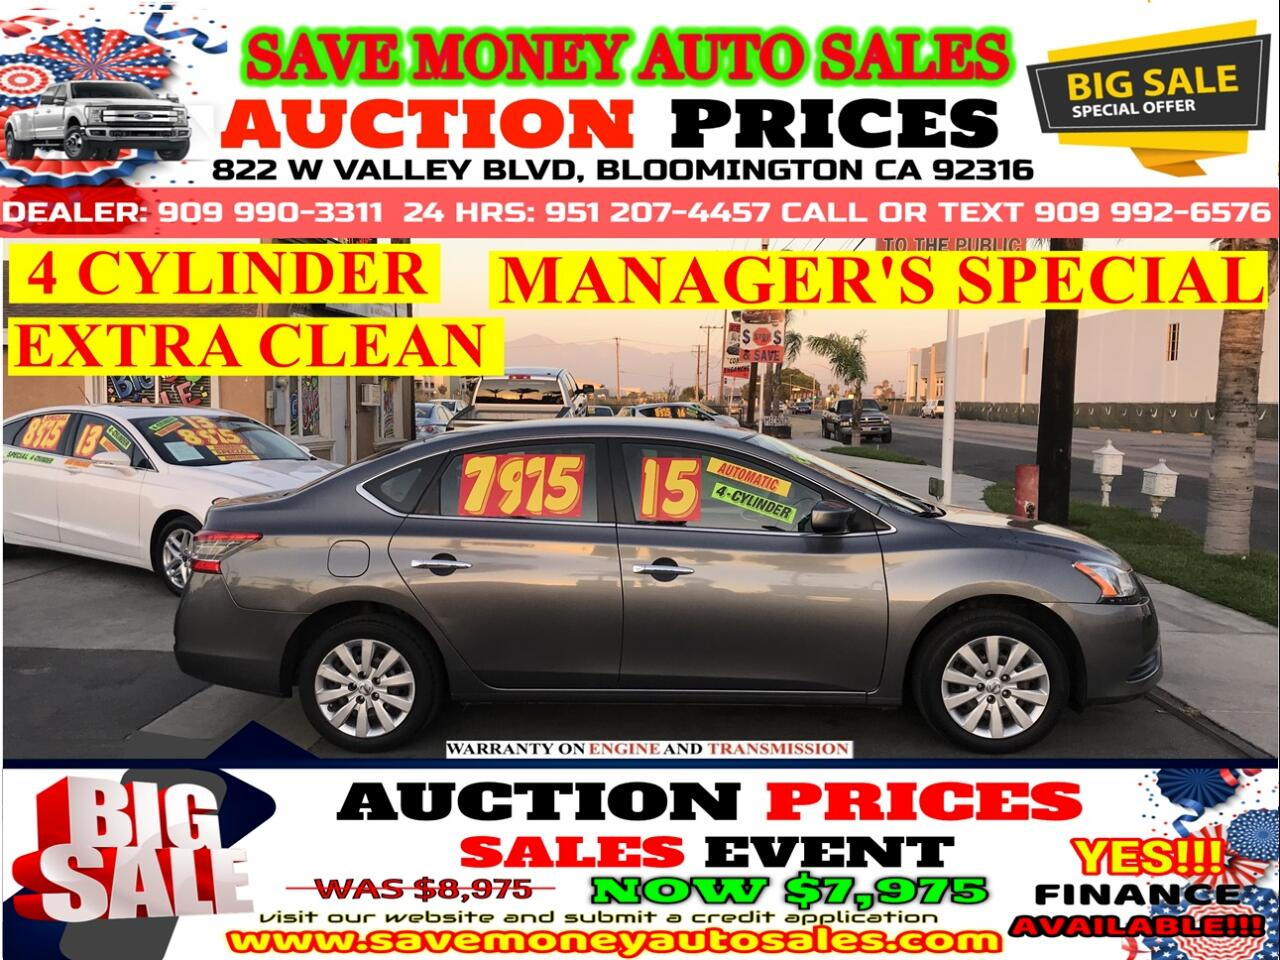 2015 Nissan Sentra 4 CYLINDER> EXTRA CLEAN> AUTOMATIC>